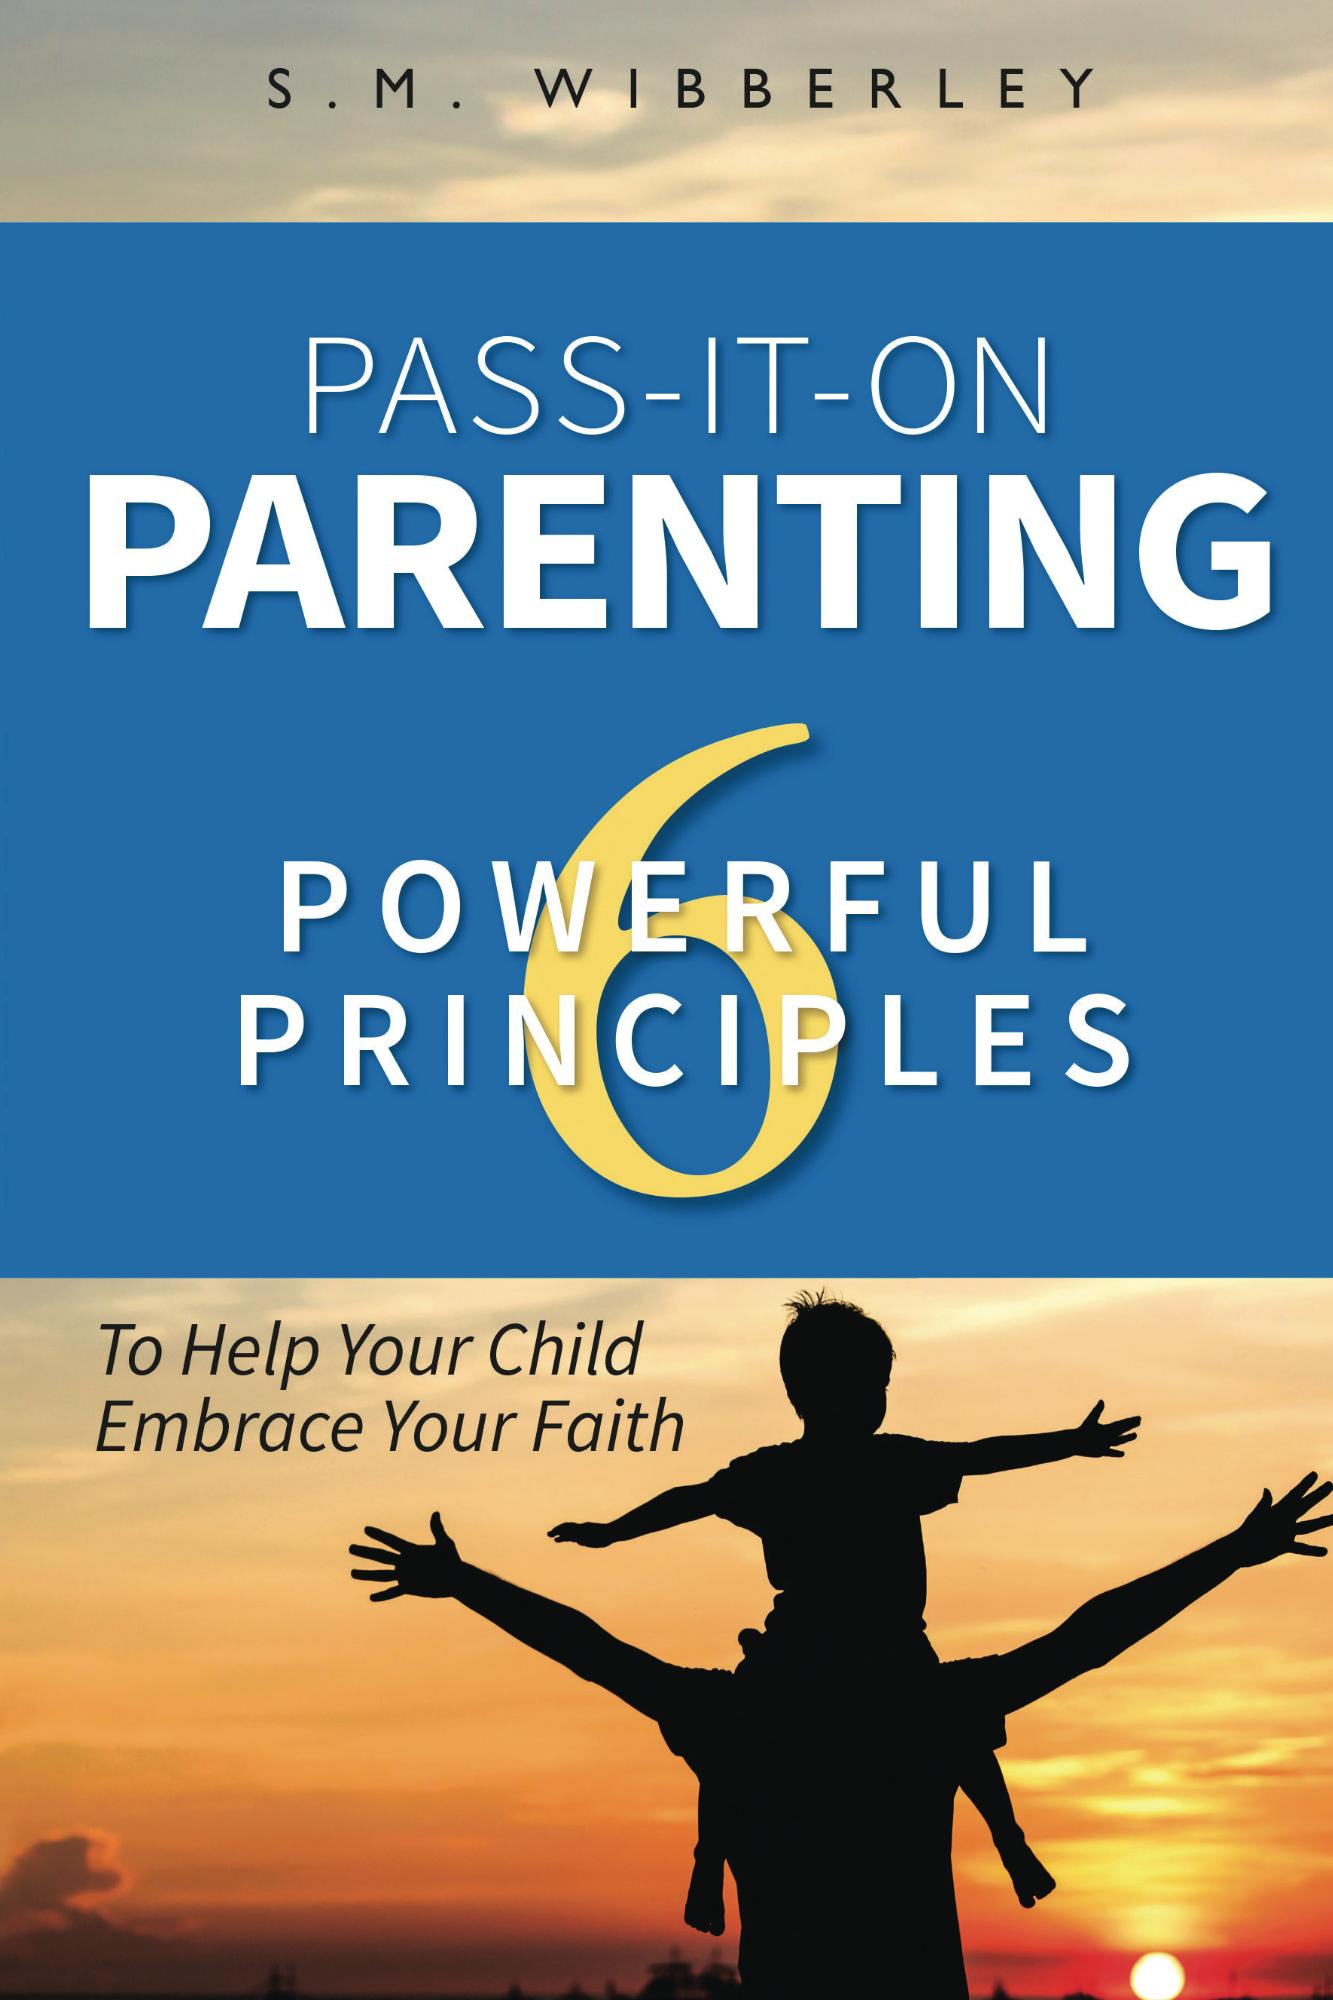 Pass-It-On Parenting: 6 Powerful Principles to Help Your Child Embrace Your Faith